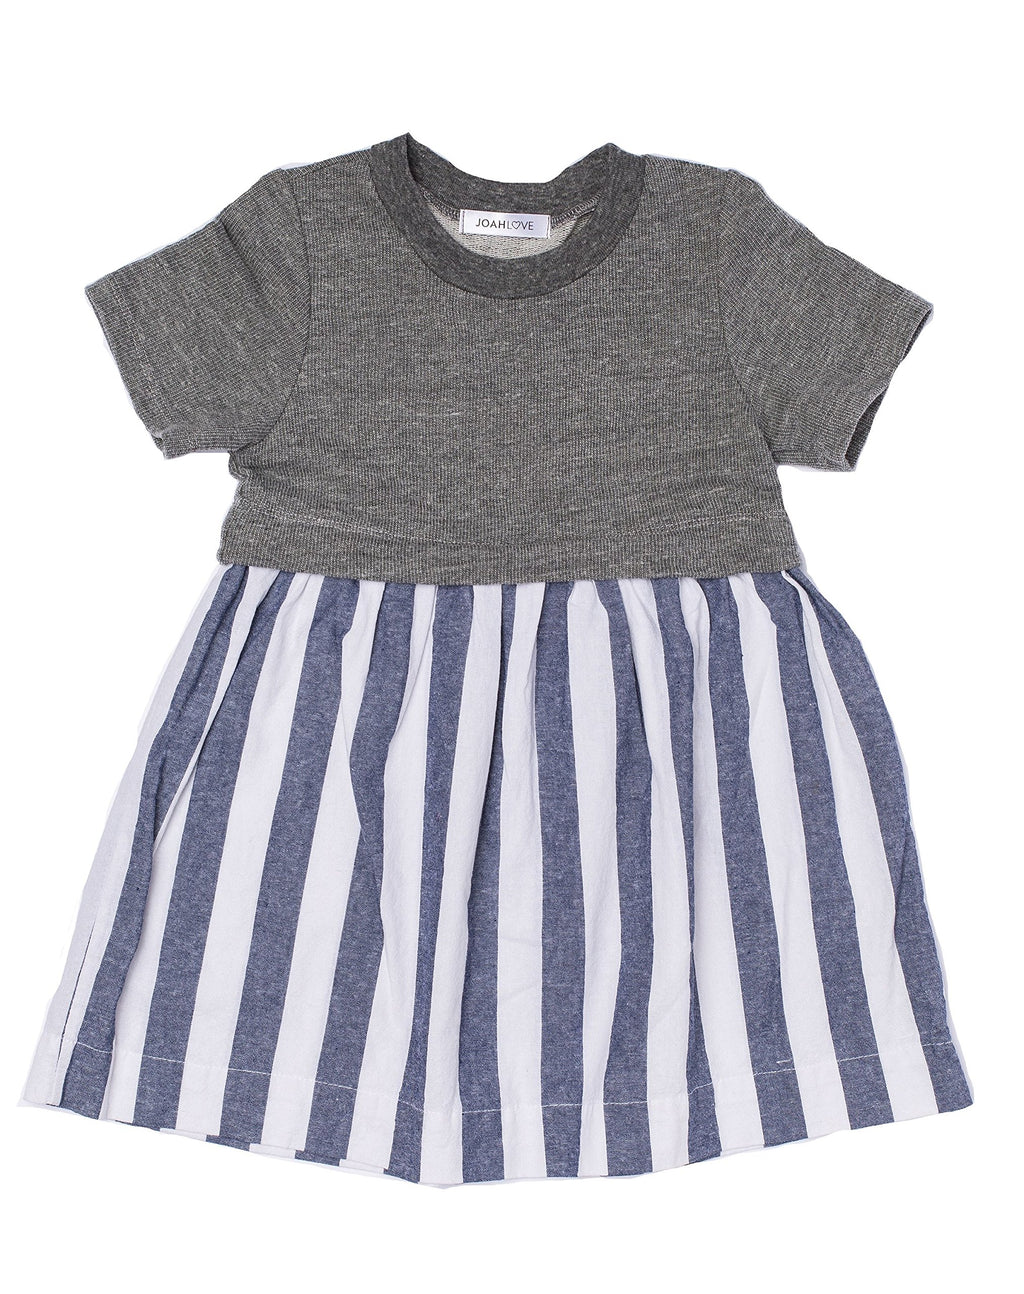 Vertical Striped Sunday Dress